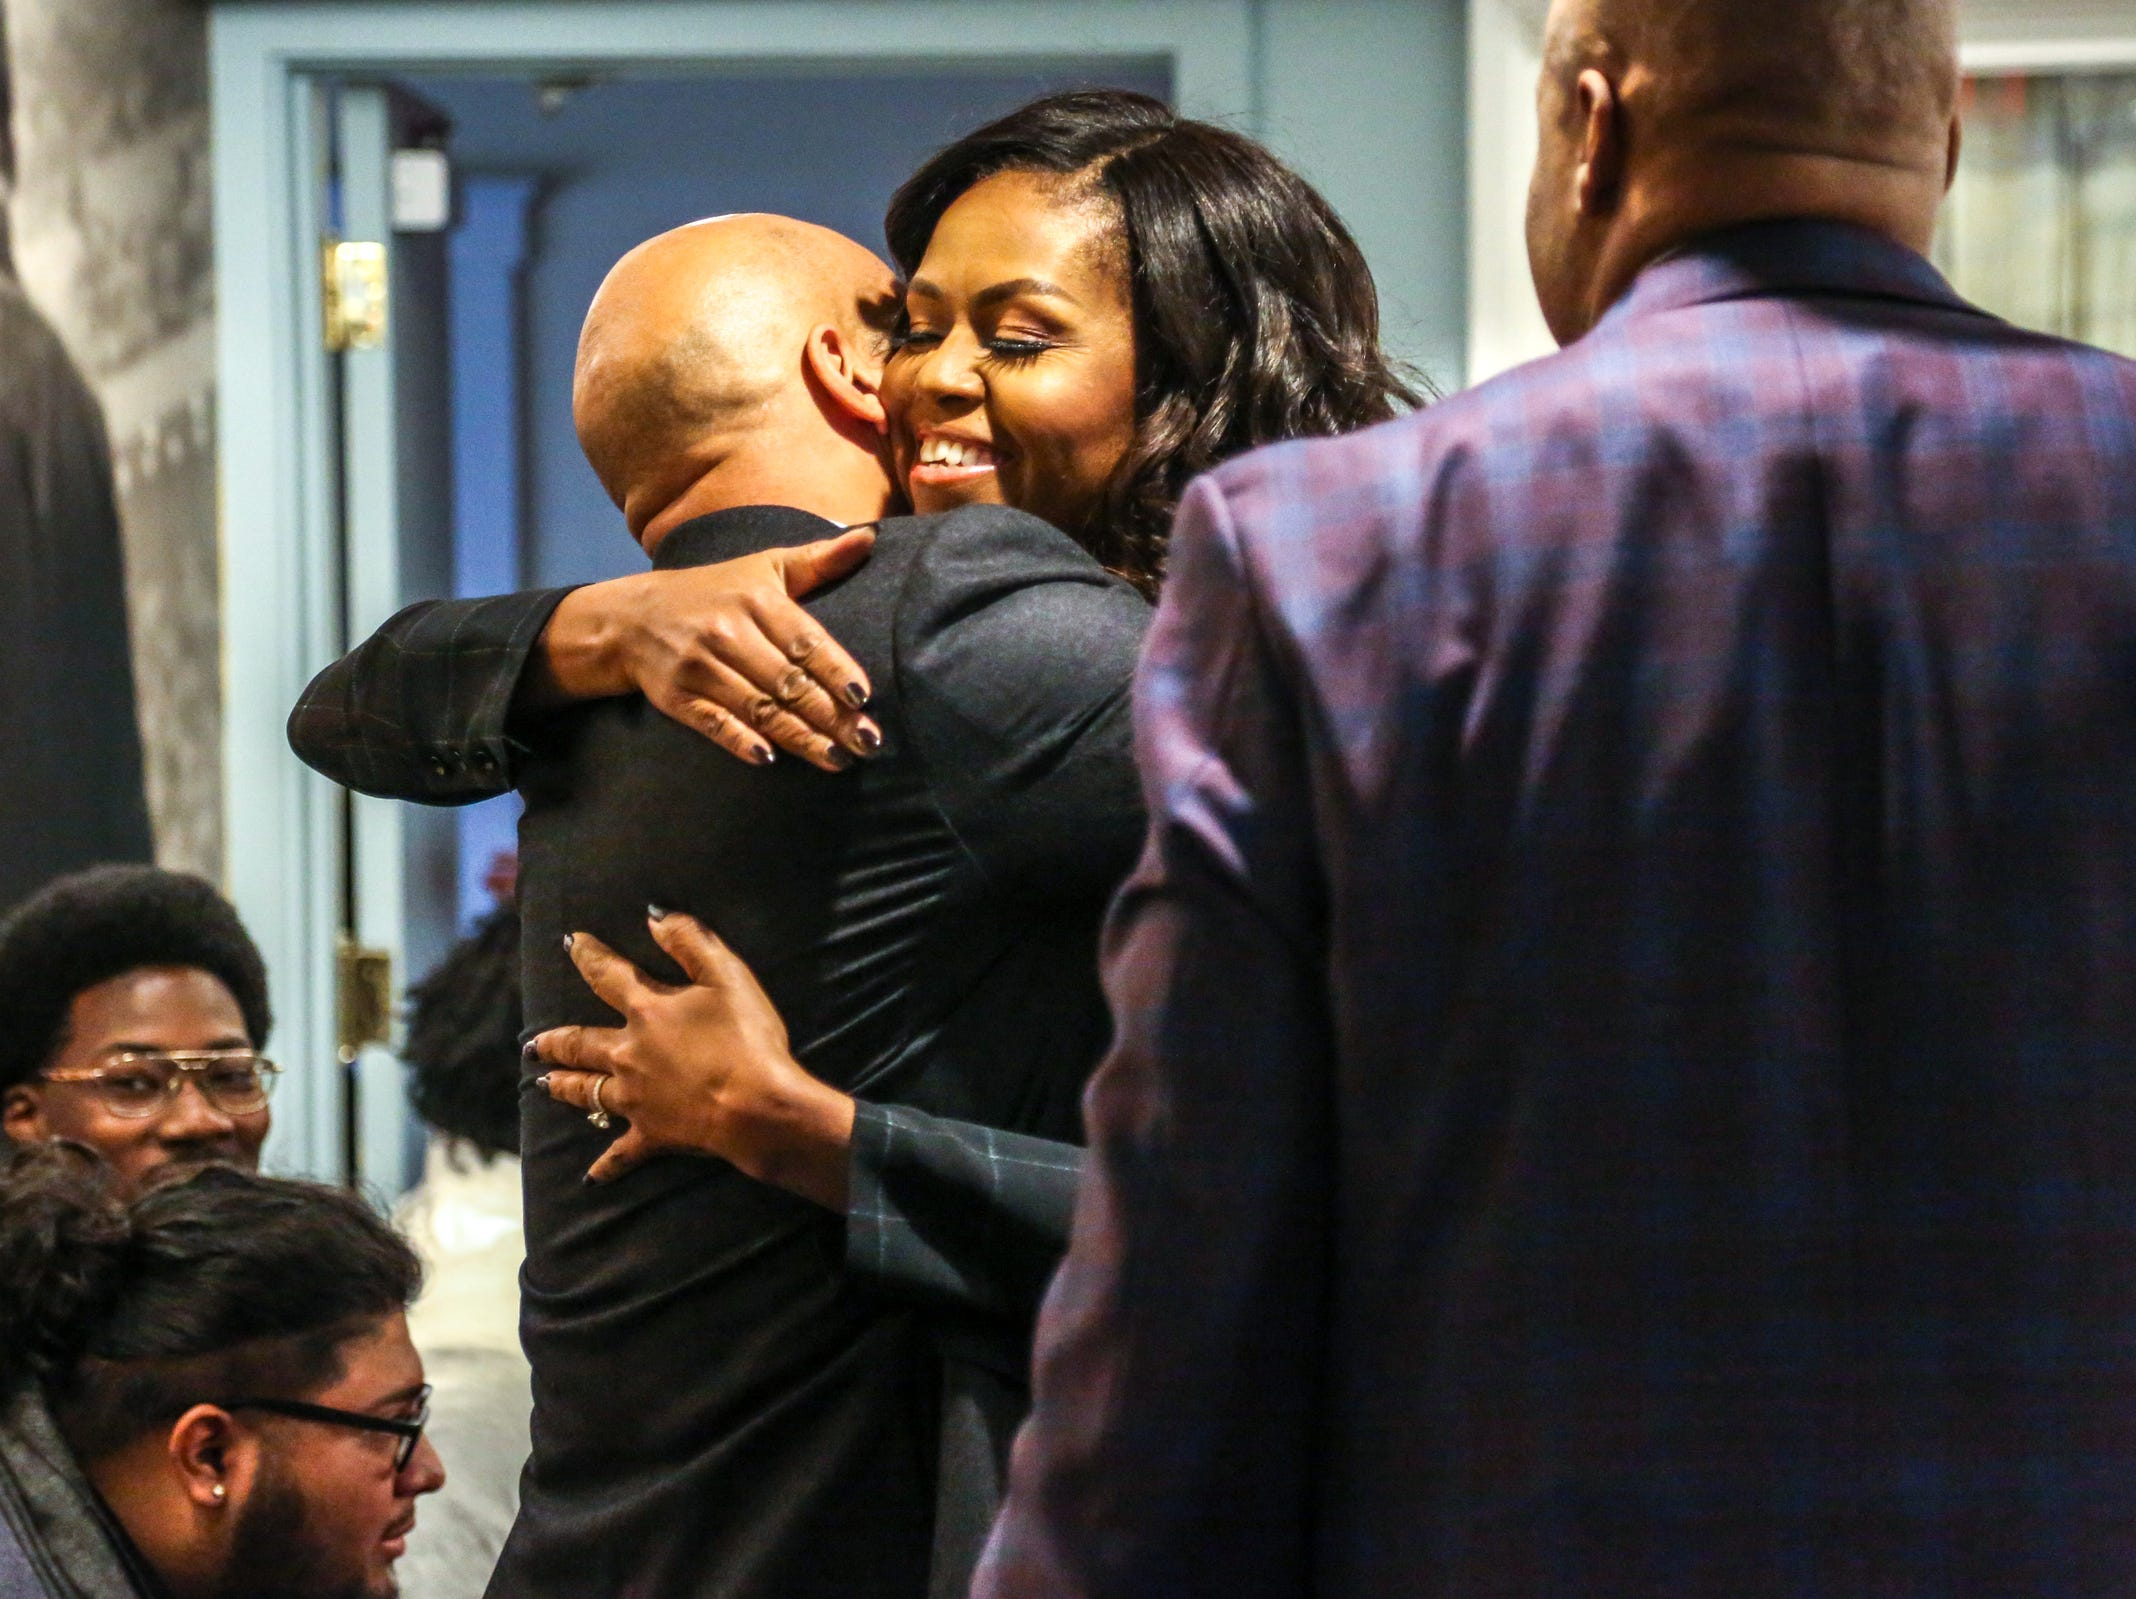 Former First Lady Michelle Obama greets Keegan-Michael Key during a roundtable with young black men from Wayne State University alongside her brother Craig Robinson, right, at Motown Museum in Detroit on Tuesday, Dec. 11, 2018.